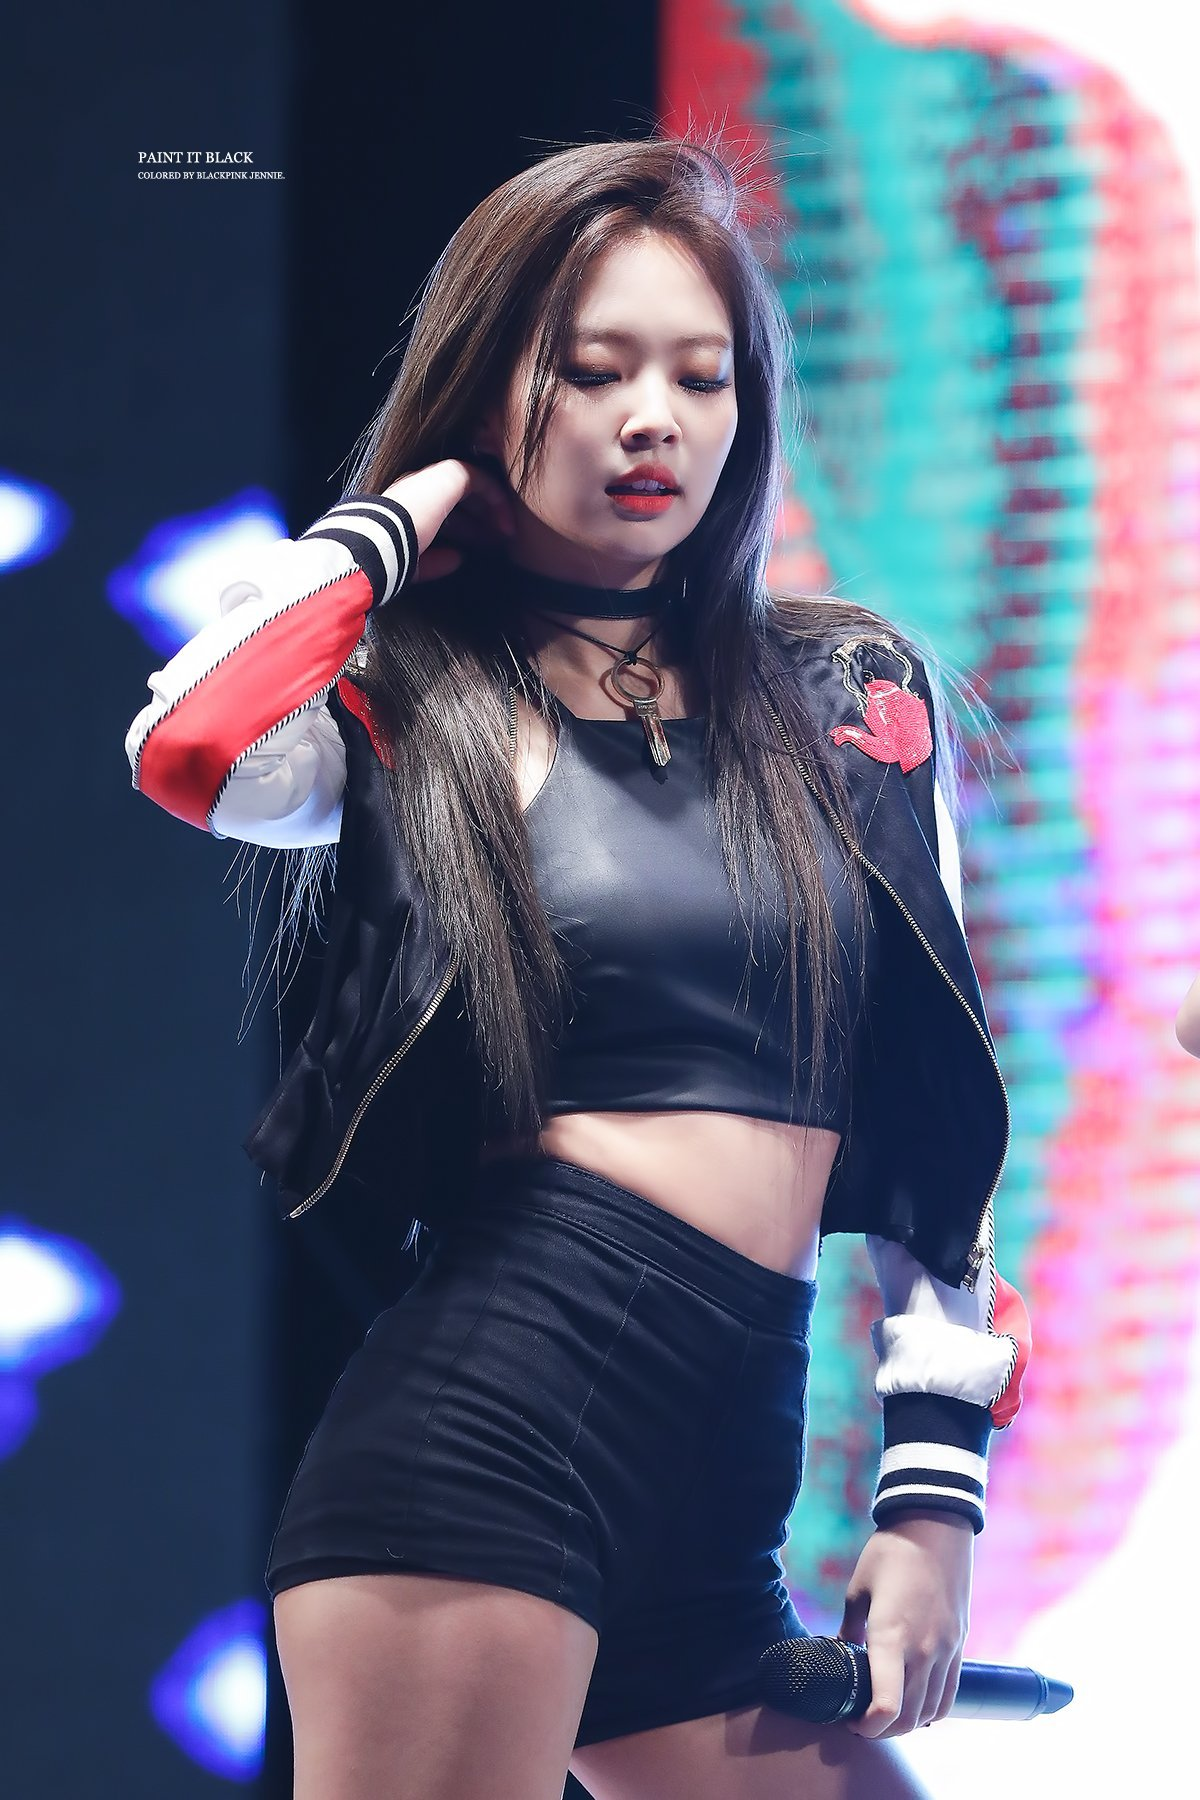 TOP 10 Sexiest Outfits Of BLACKPINK Jennie (30+ Photos